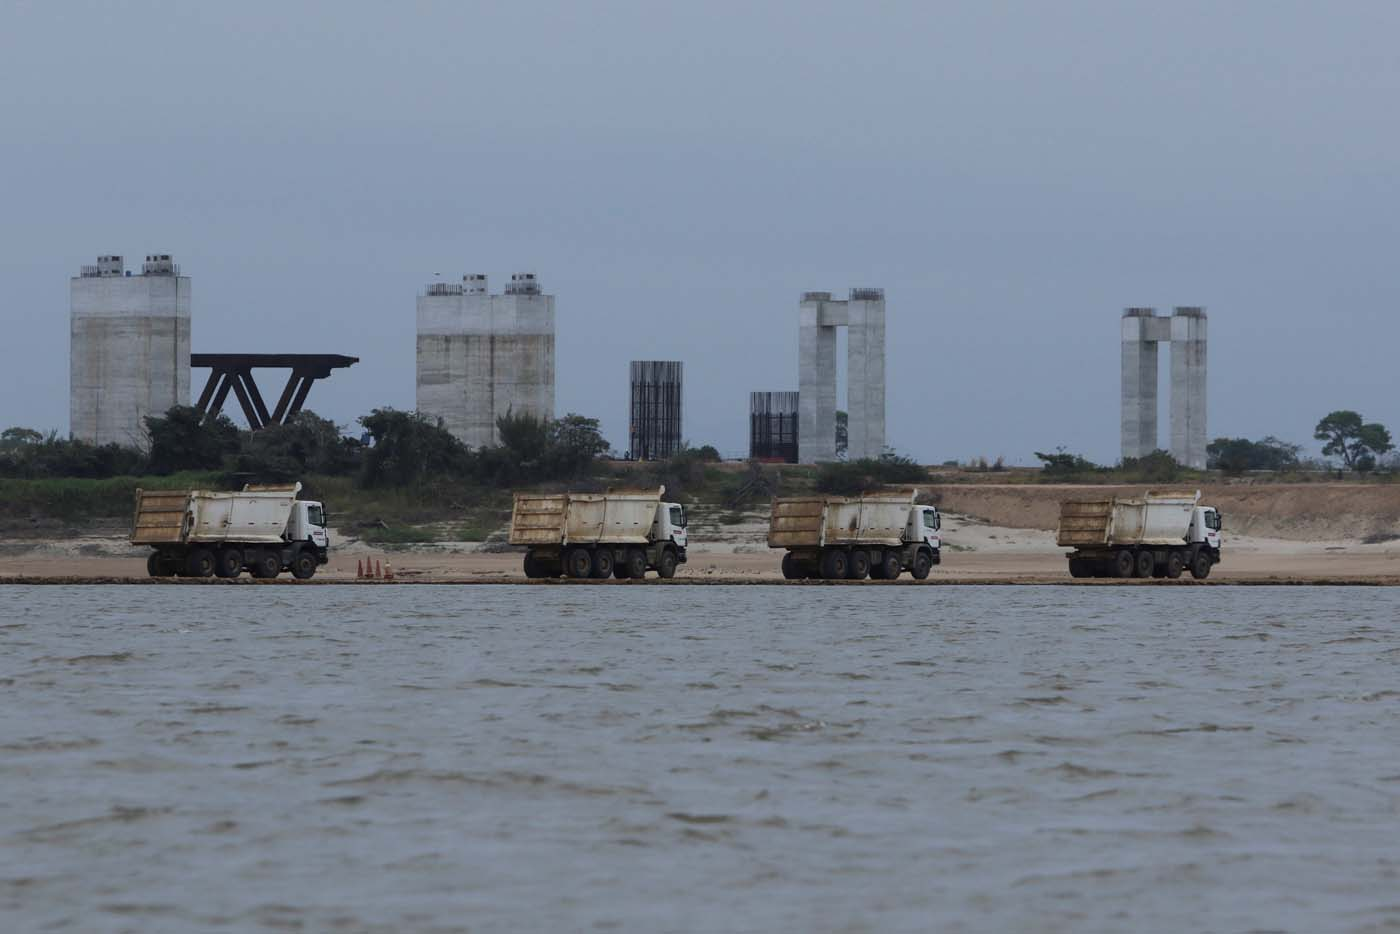 Trucks are seen at a construction site by Odebrecht of the third bridge over the Orinoco River in Caicara del Orinoco, Venezuela March 21, 2017. Picture taken March 21, 2017. REUTERS/William Urdaneta